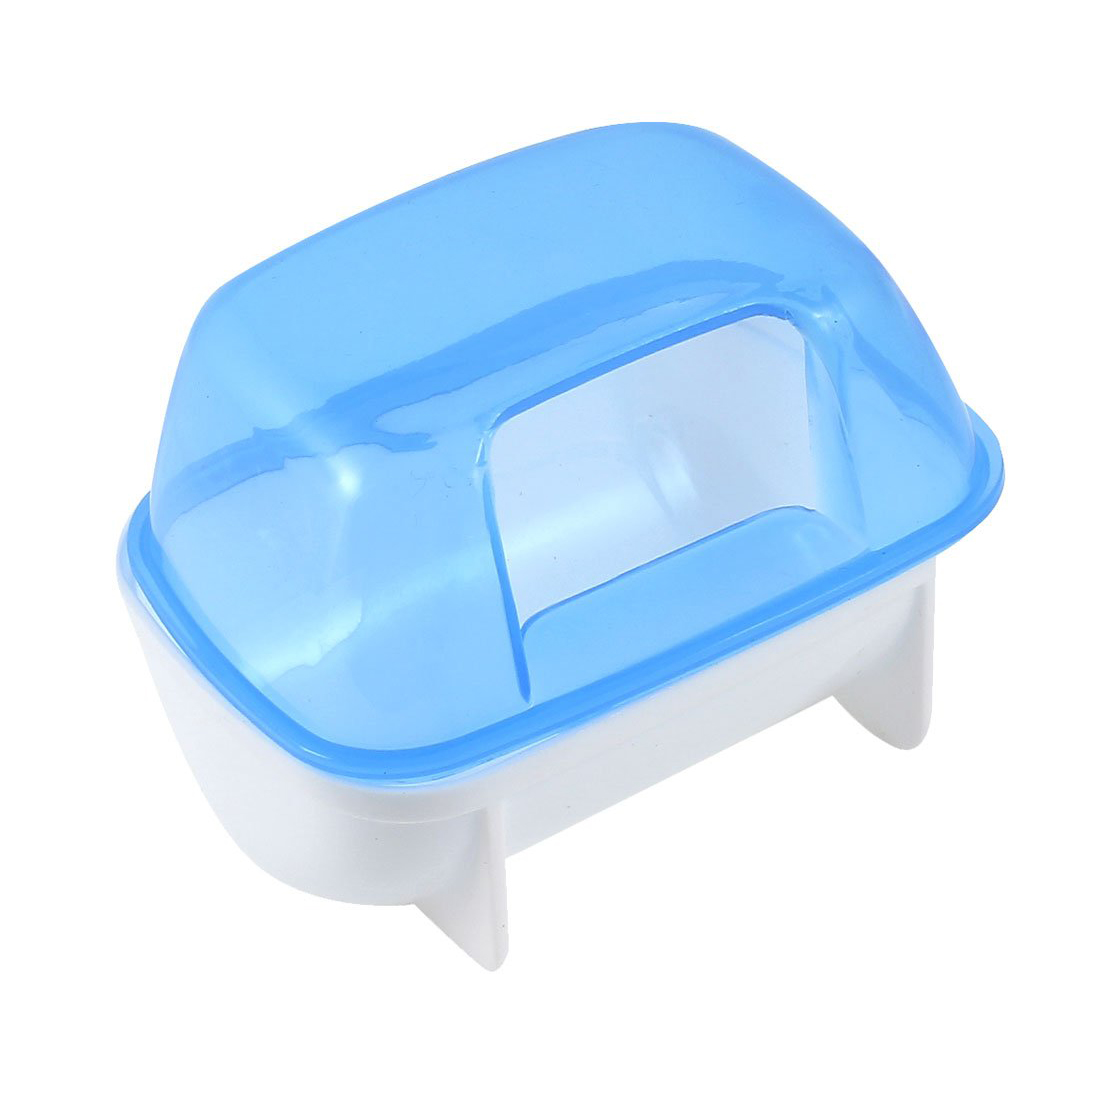 New Hotsale Best Price In Aliexpress promotion Pet Hamster Bathroom Bath Sand Room Sauna Toilet Blue White 10x7x7cm(China (Mainland))